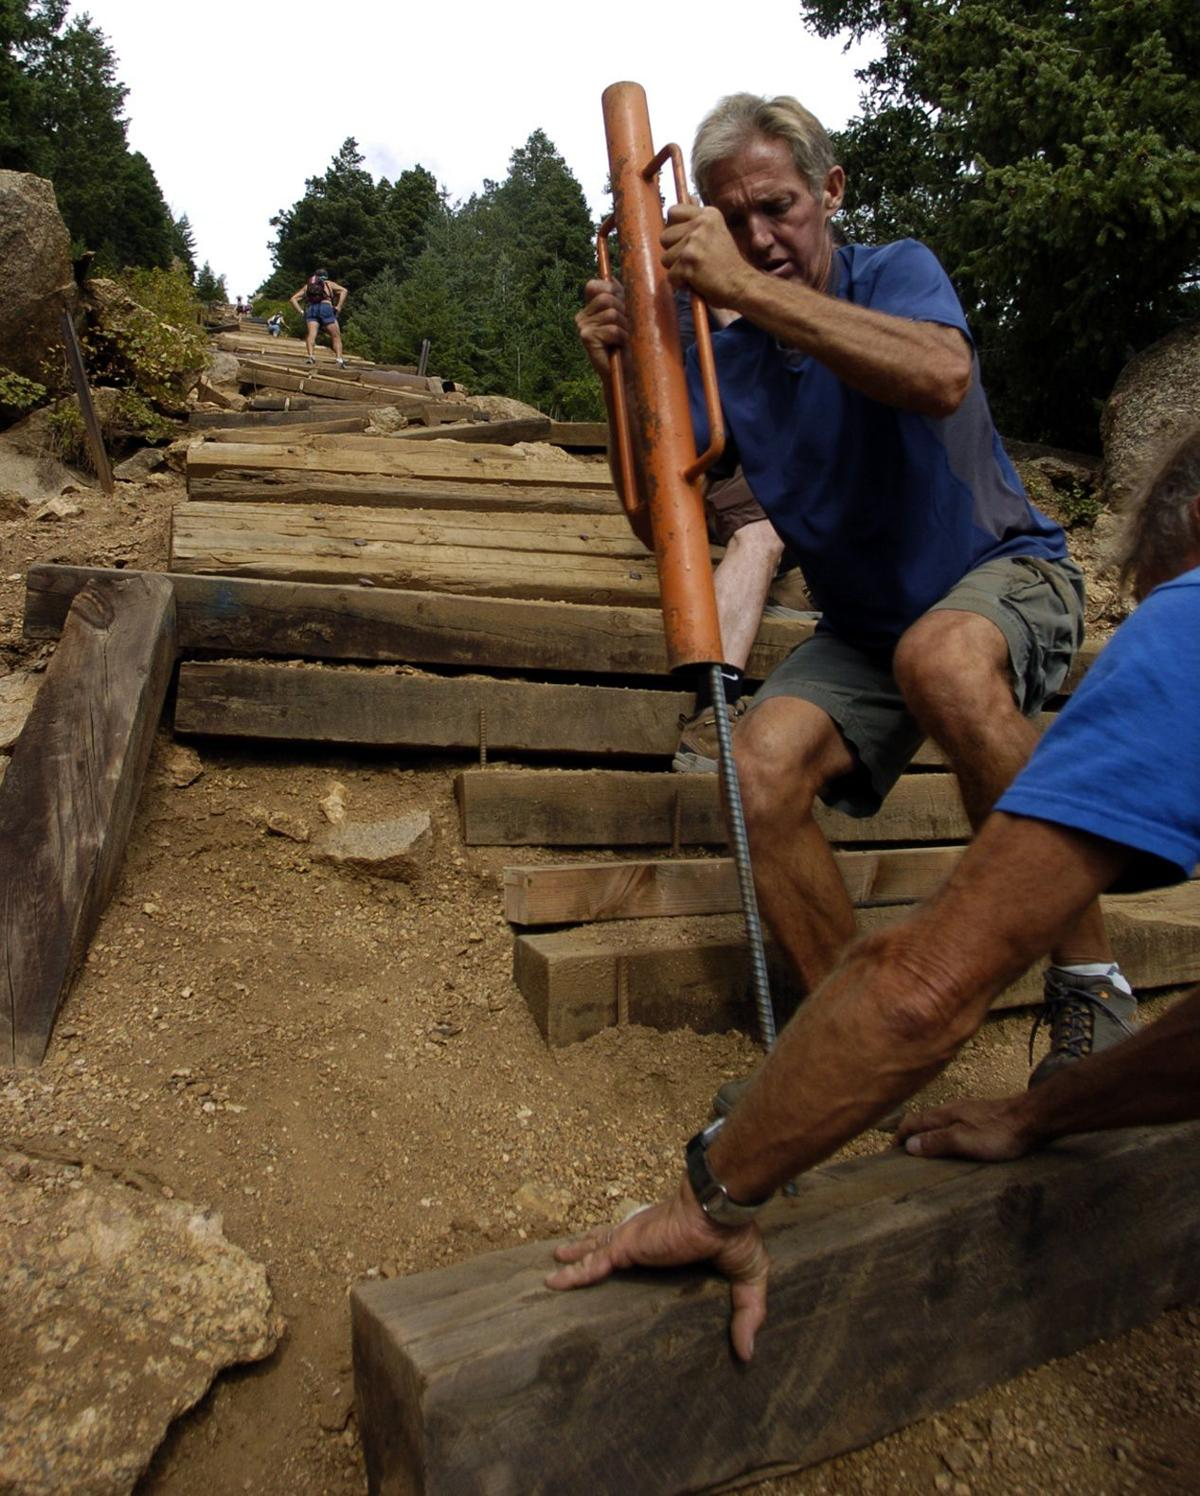 Ed Baxter, standing, and his brother Fred Baxter install new steps on Incline trail above Manitou Springs, Colo., Saturday, Sept. 10, 2005. Photo by Christian Murdock/The Gazette